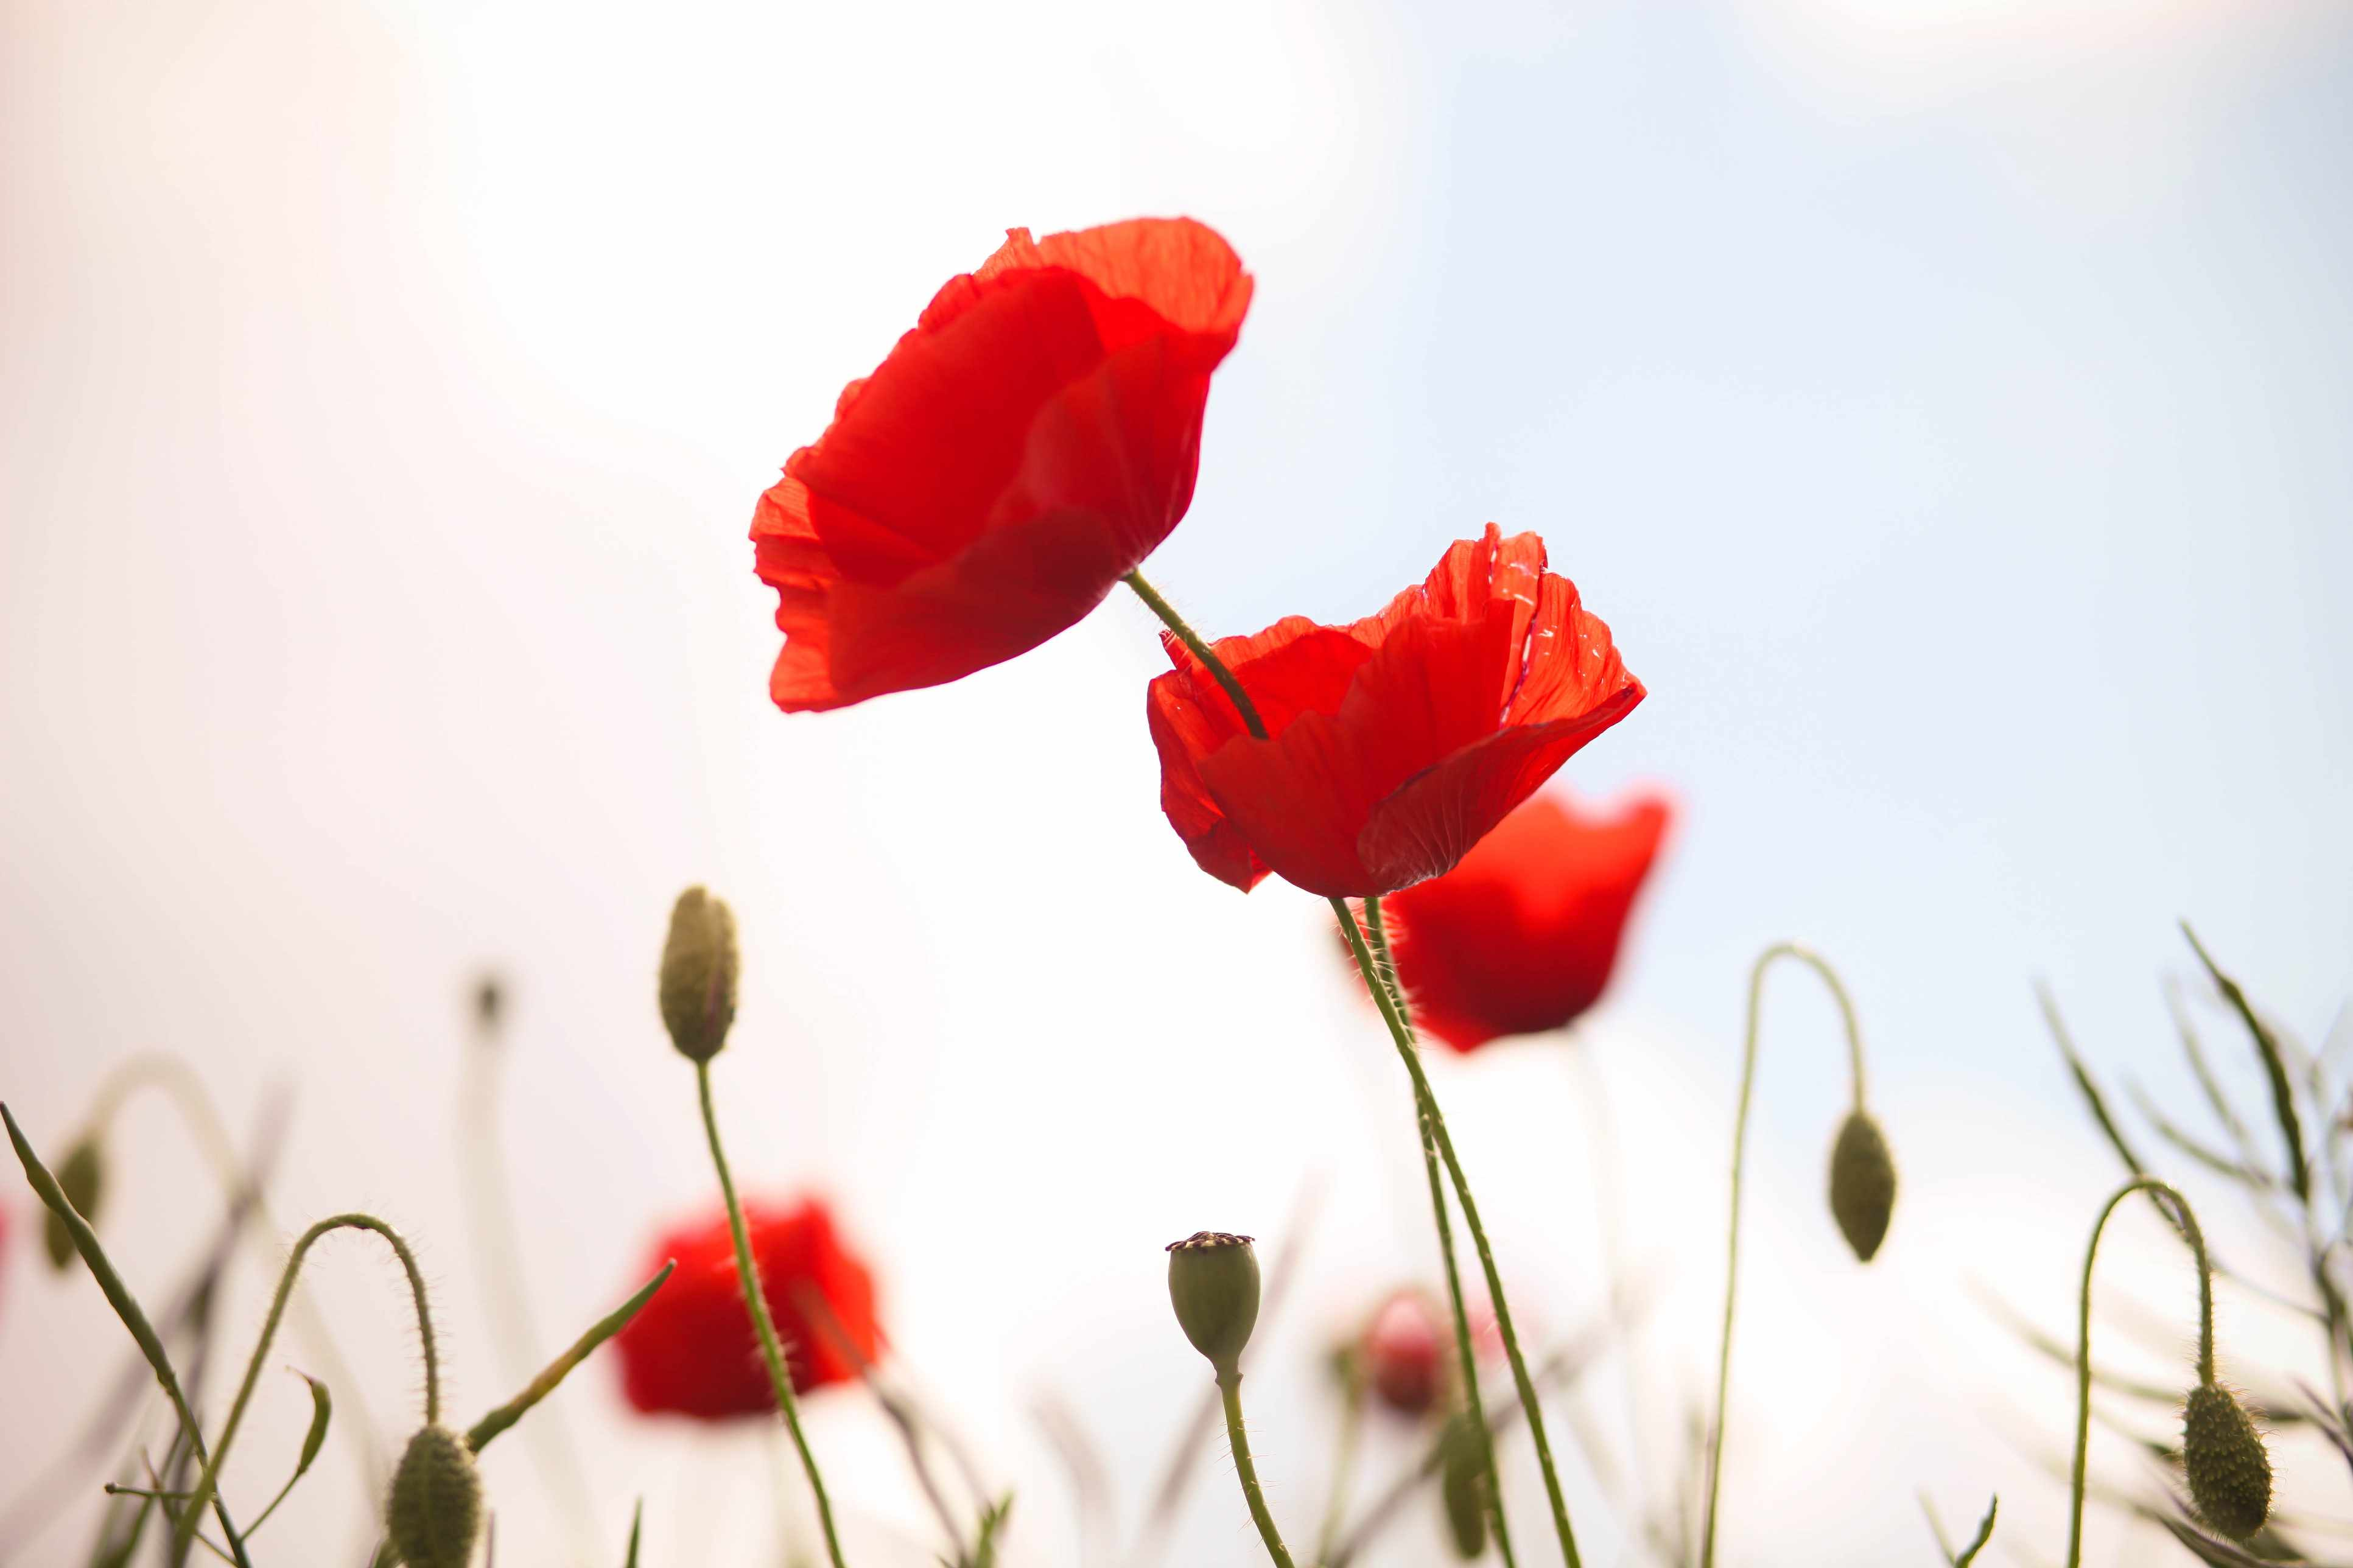 10 facts you probably didn't know about poppies